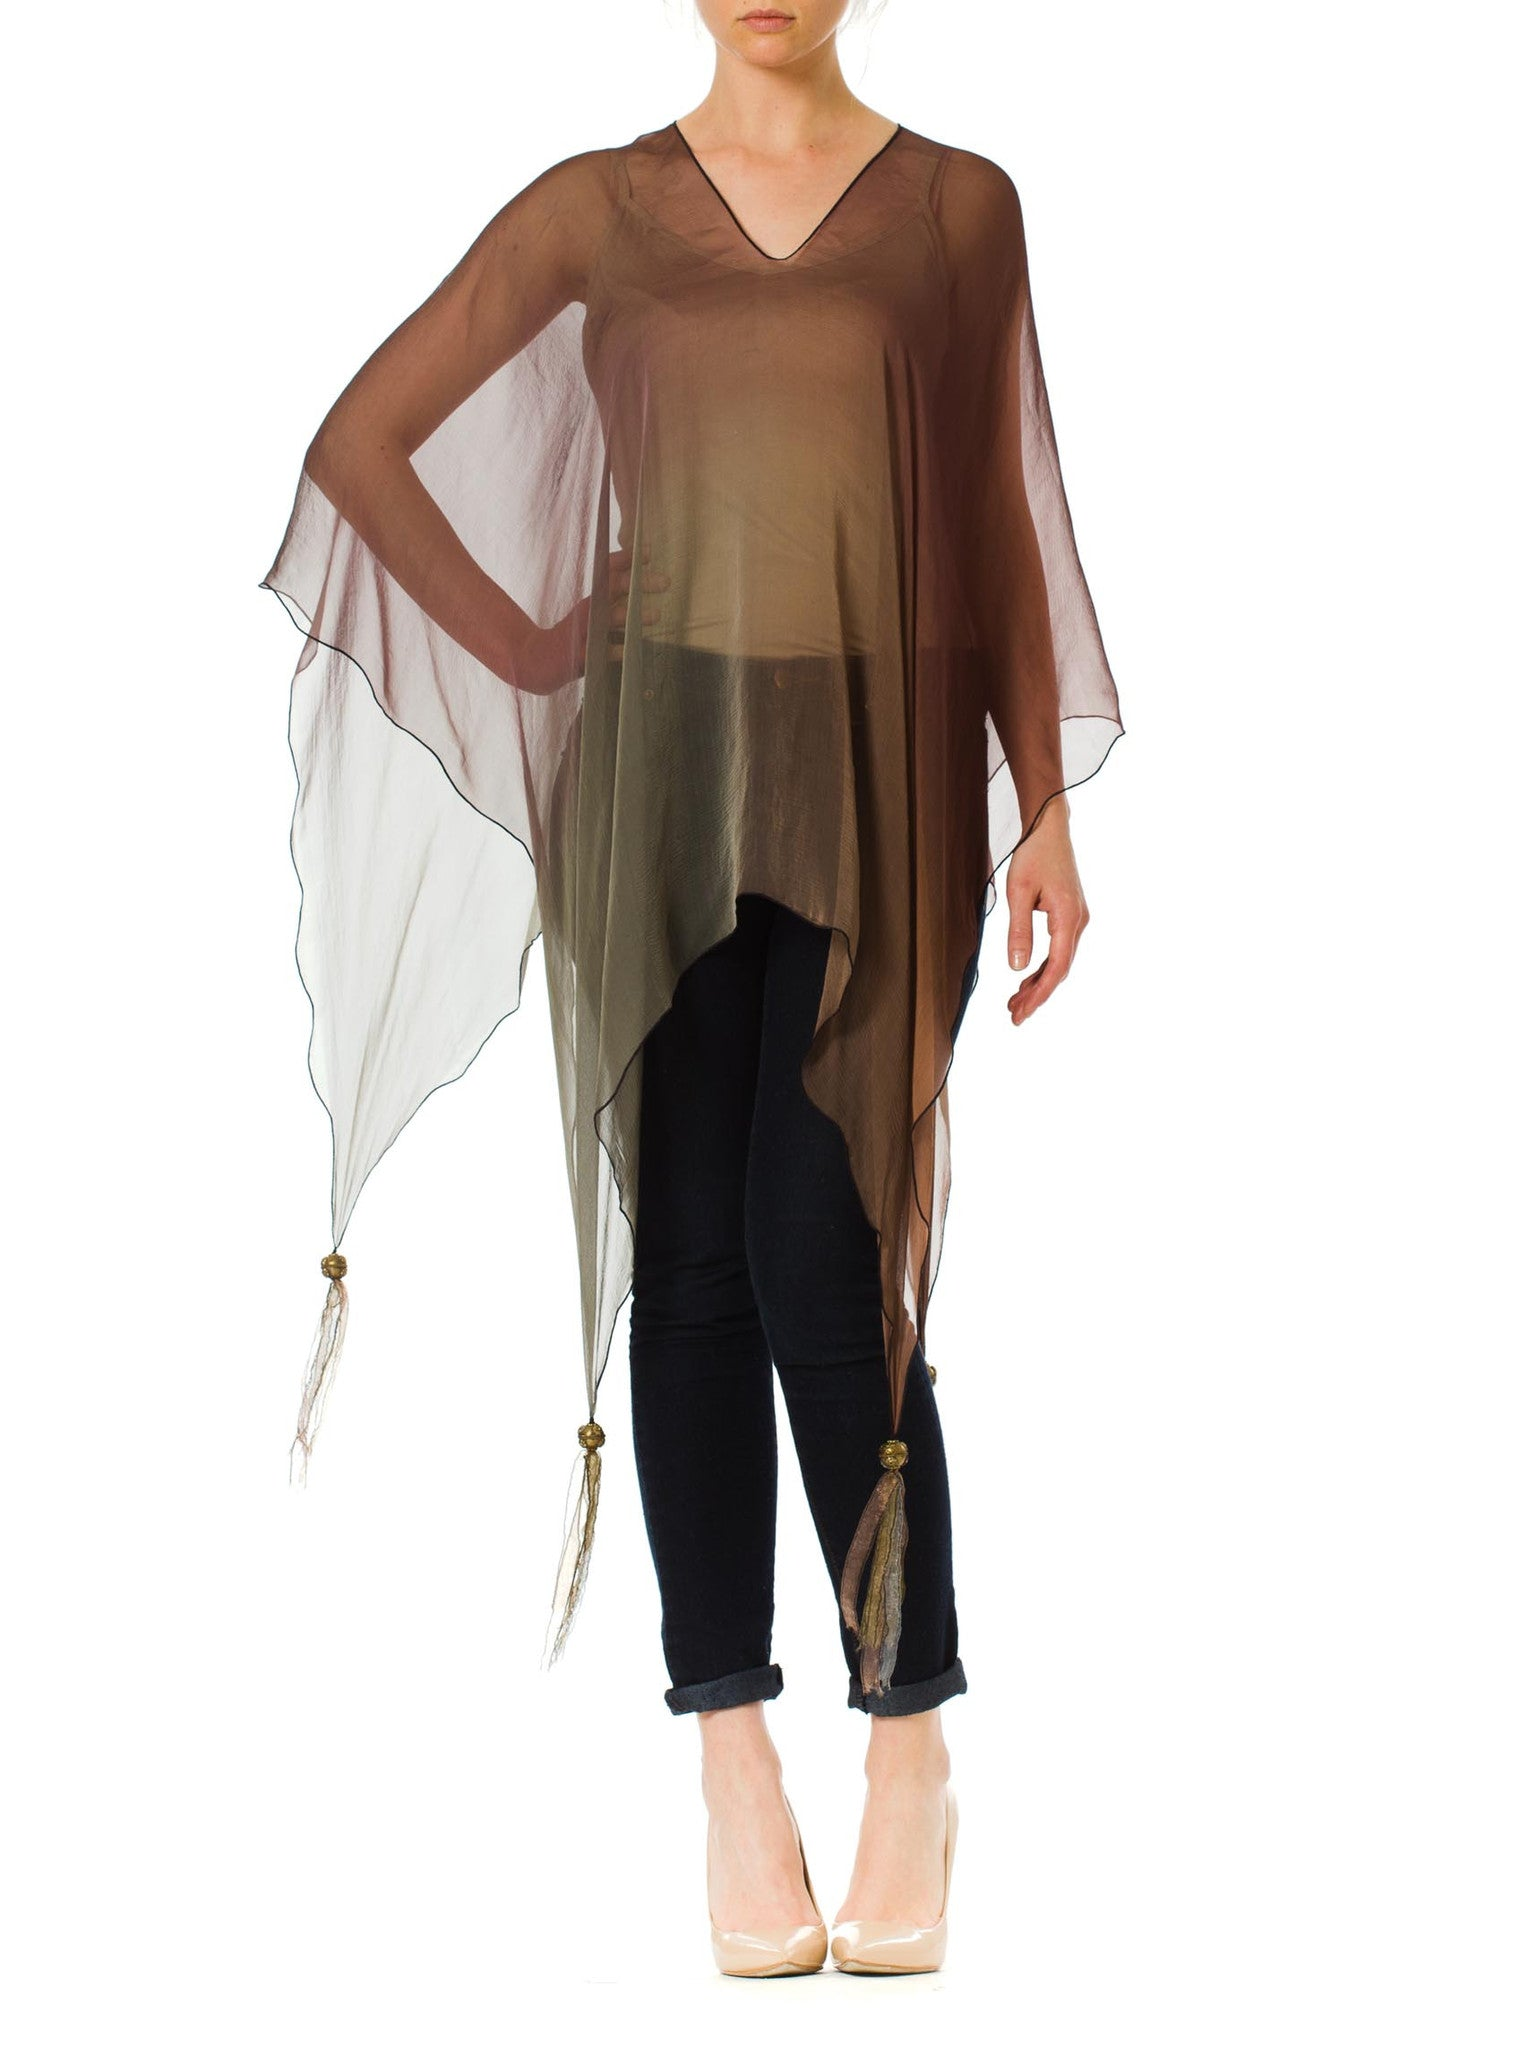 1970s Holly Harp Ombre Silk Sheer Poncho with Tassels